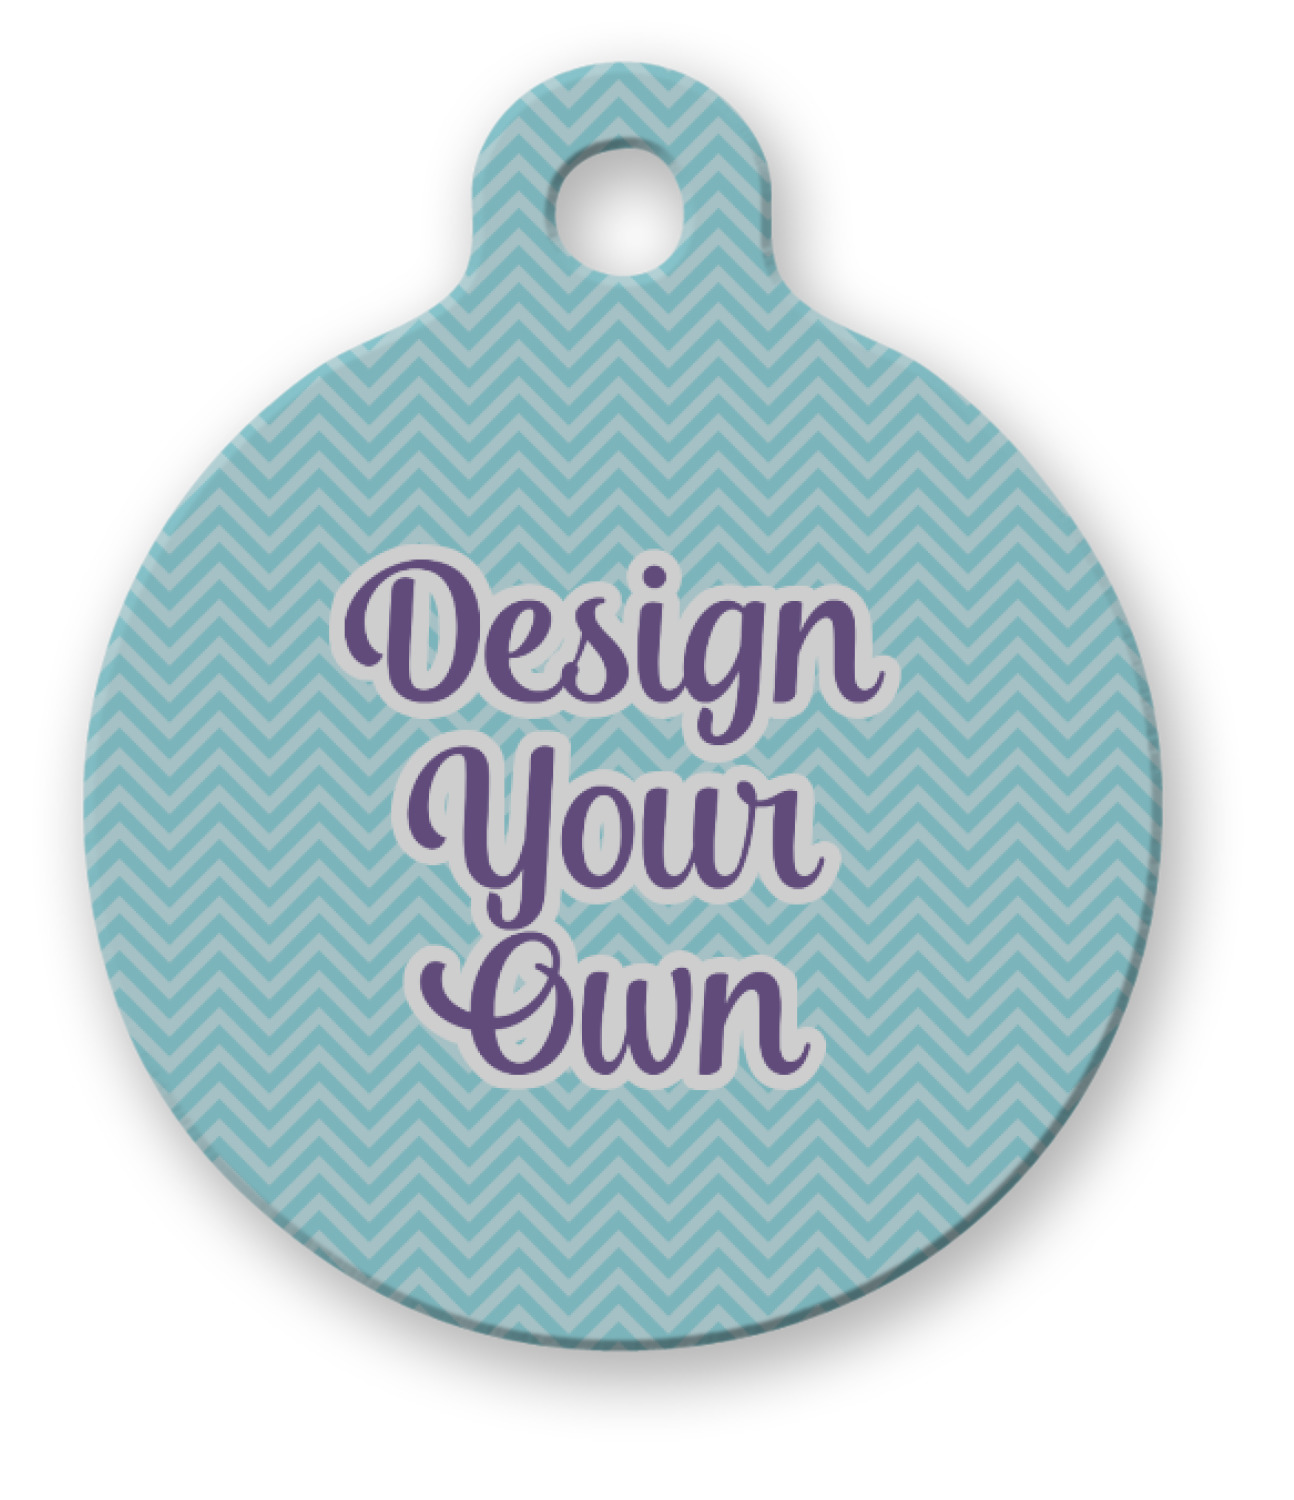 Design Your Own Round Pet Tag Personalized Youcustomizeit